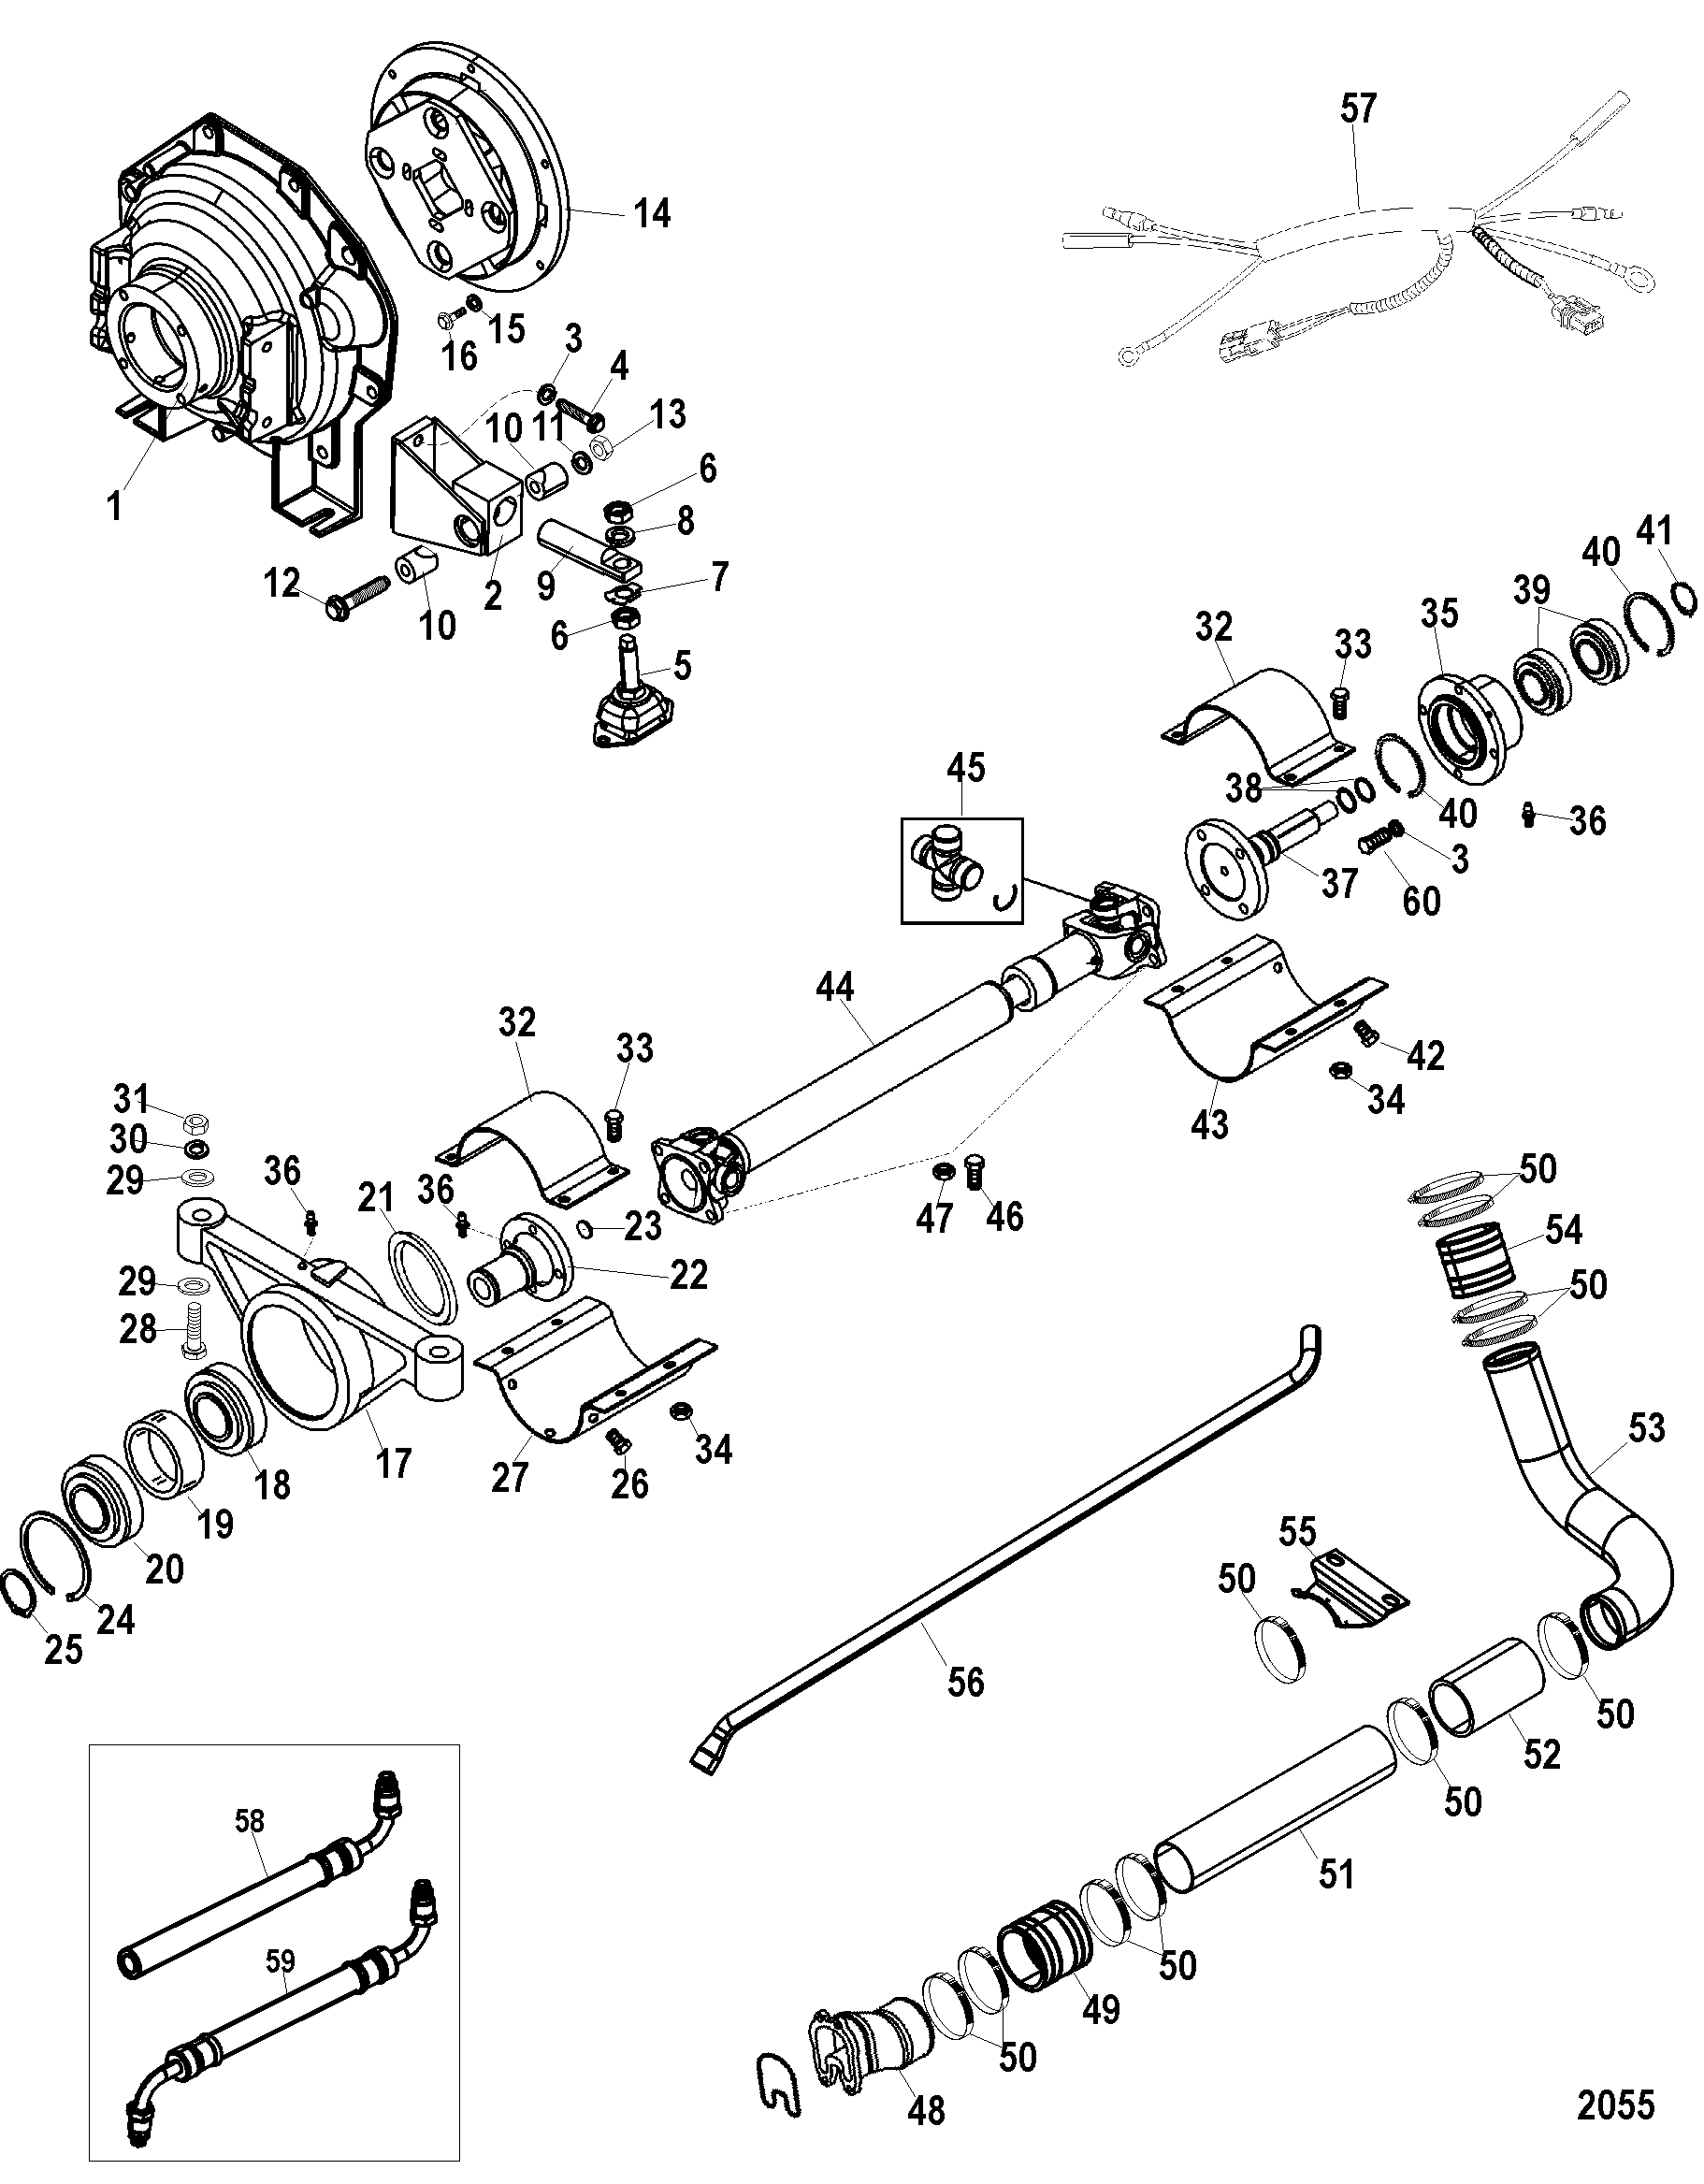 Jack Shaft Components For Mercruiser D1 7l Dti Sterndrive